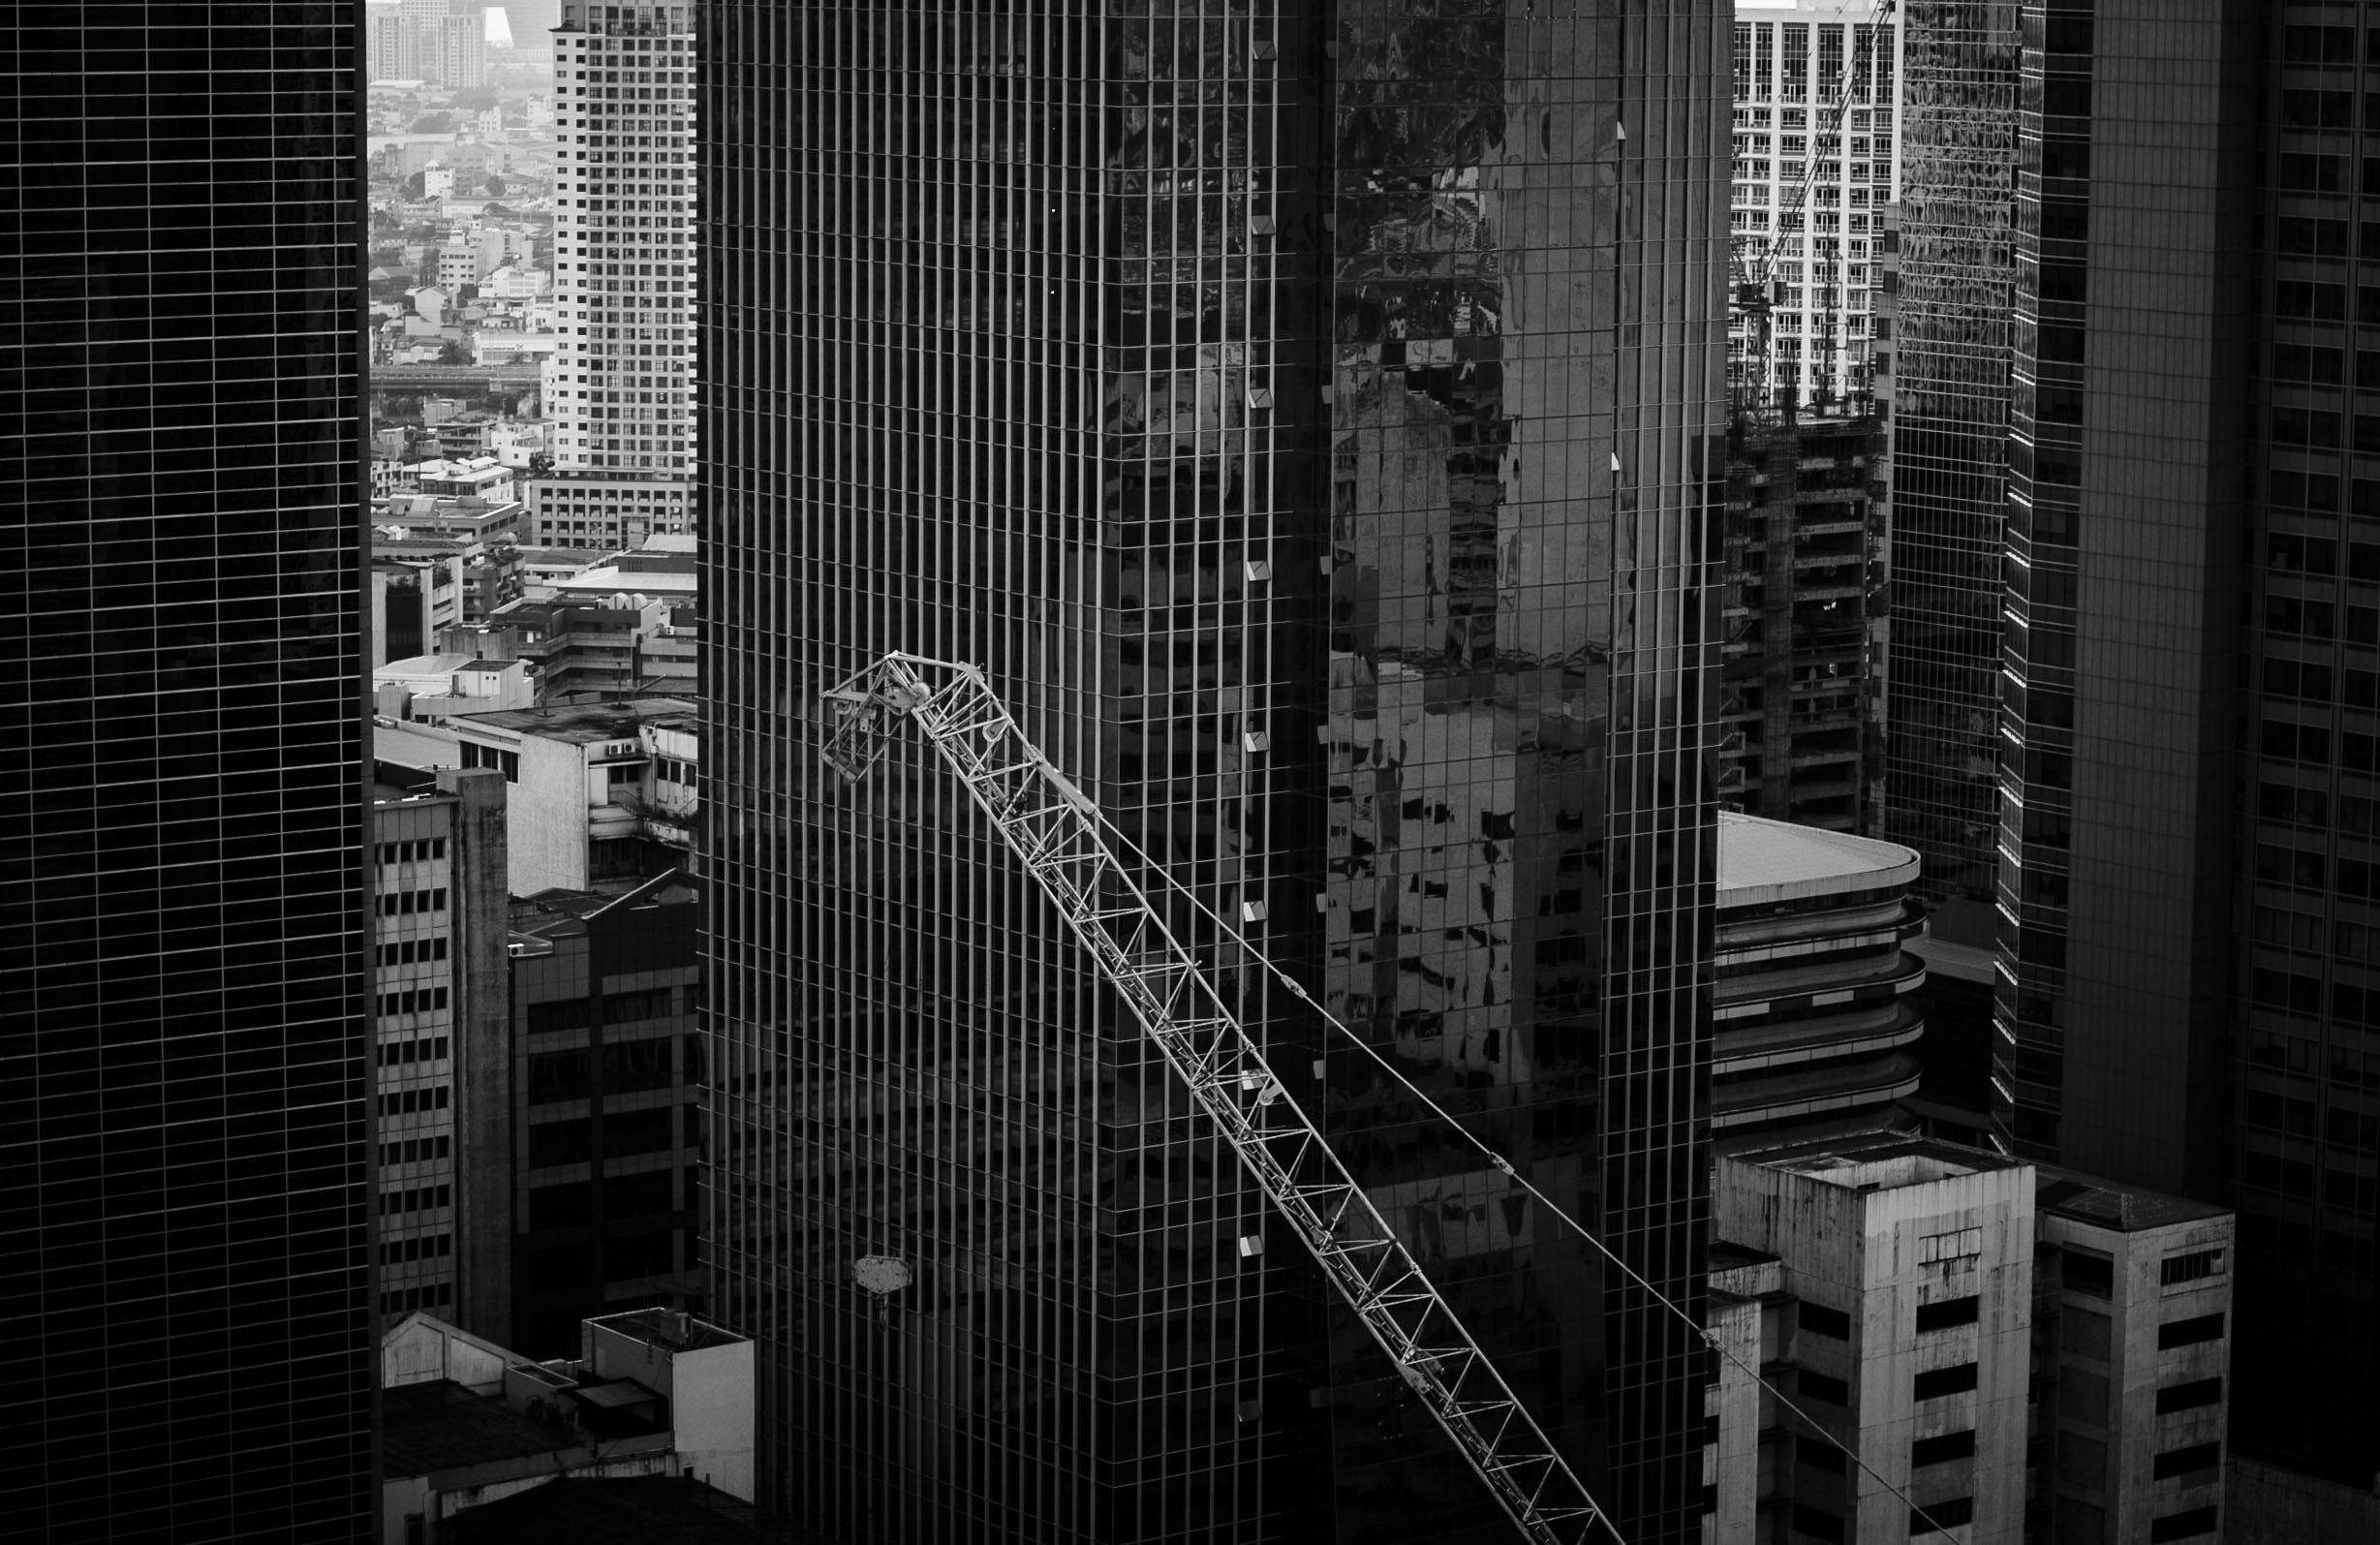 Grayscale Photo of a High Rise Building